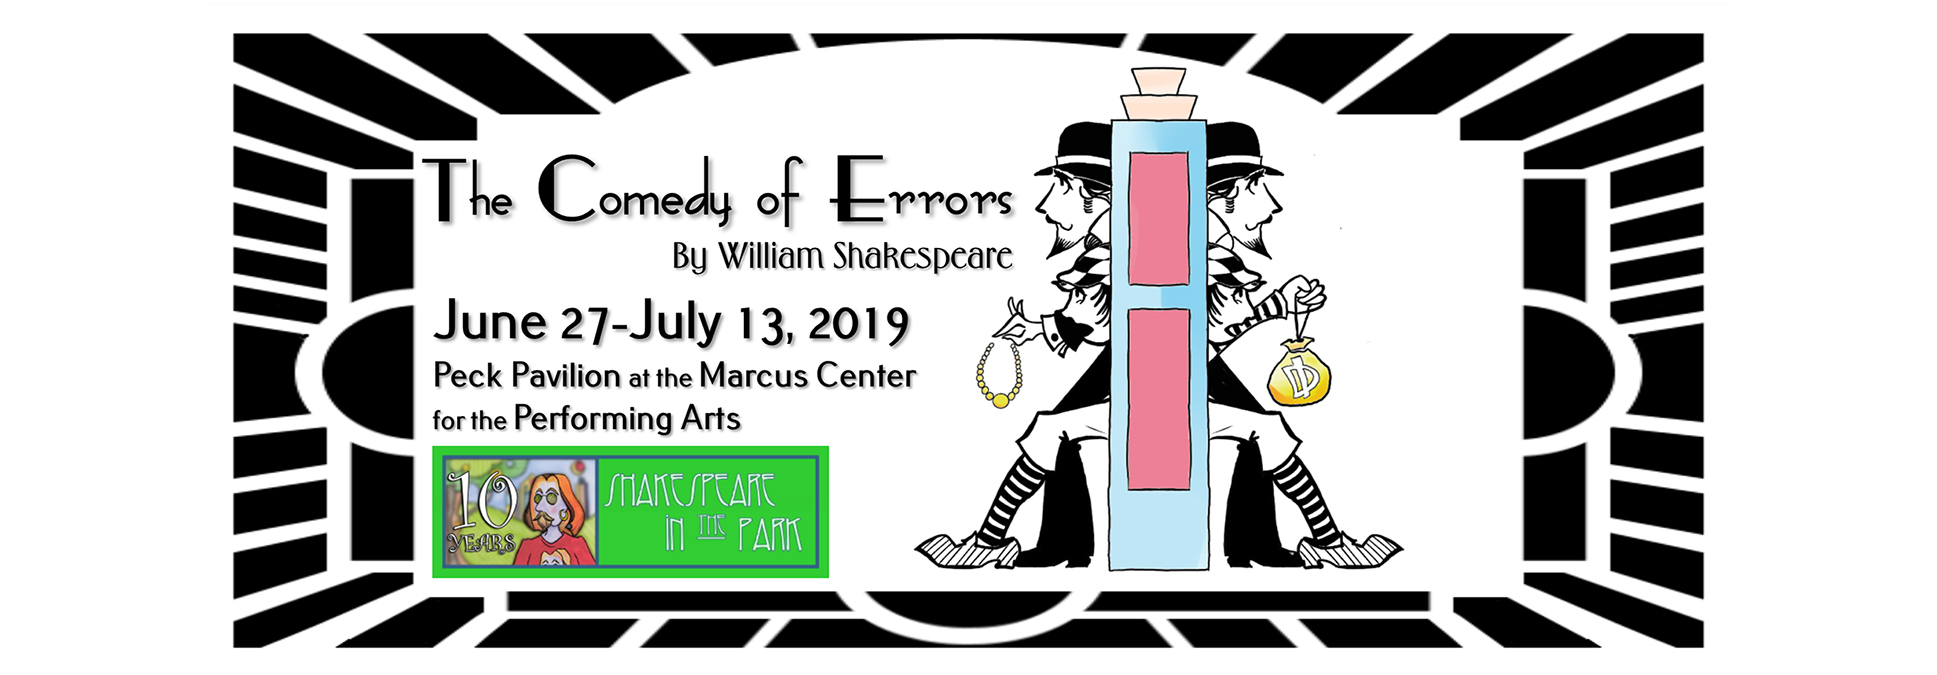 Optimist Theater Comedy of Errors in Milwaukee at the Marcus Center